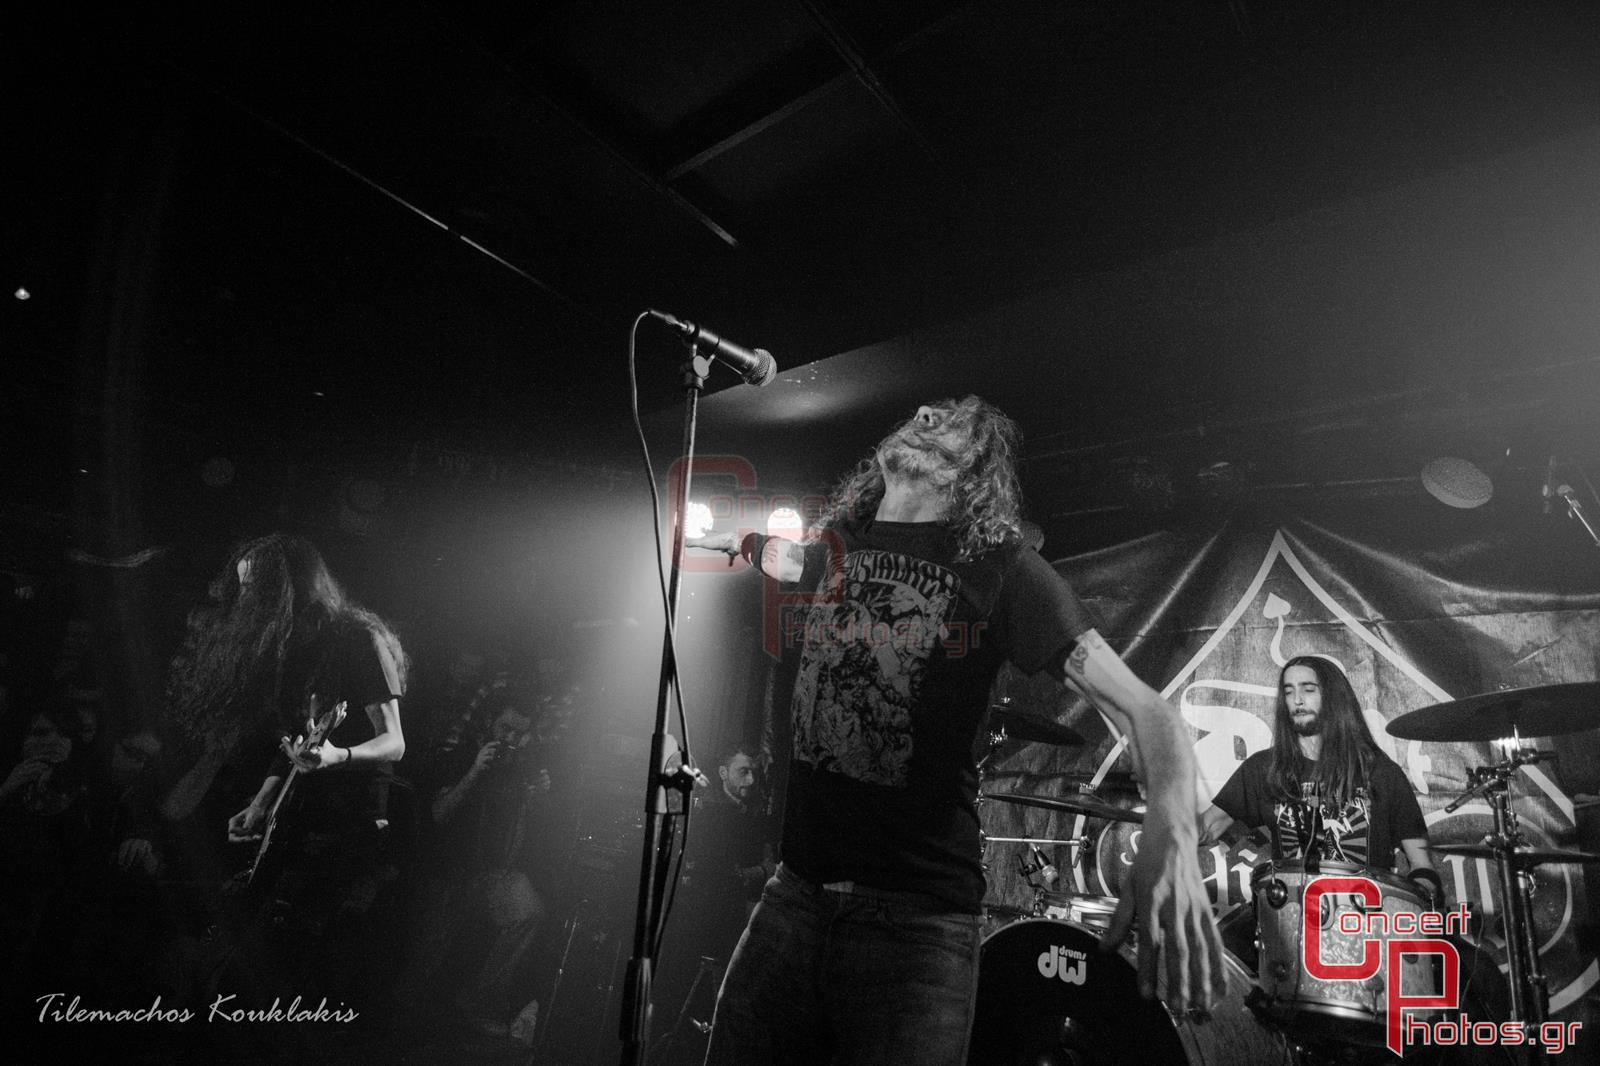 Nightstalker-Nightstalker AN Club photographer:  - concertphotos_-30